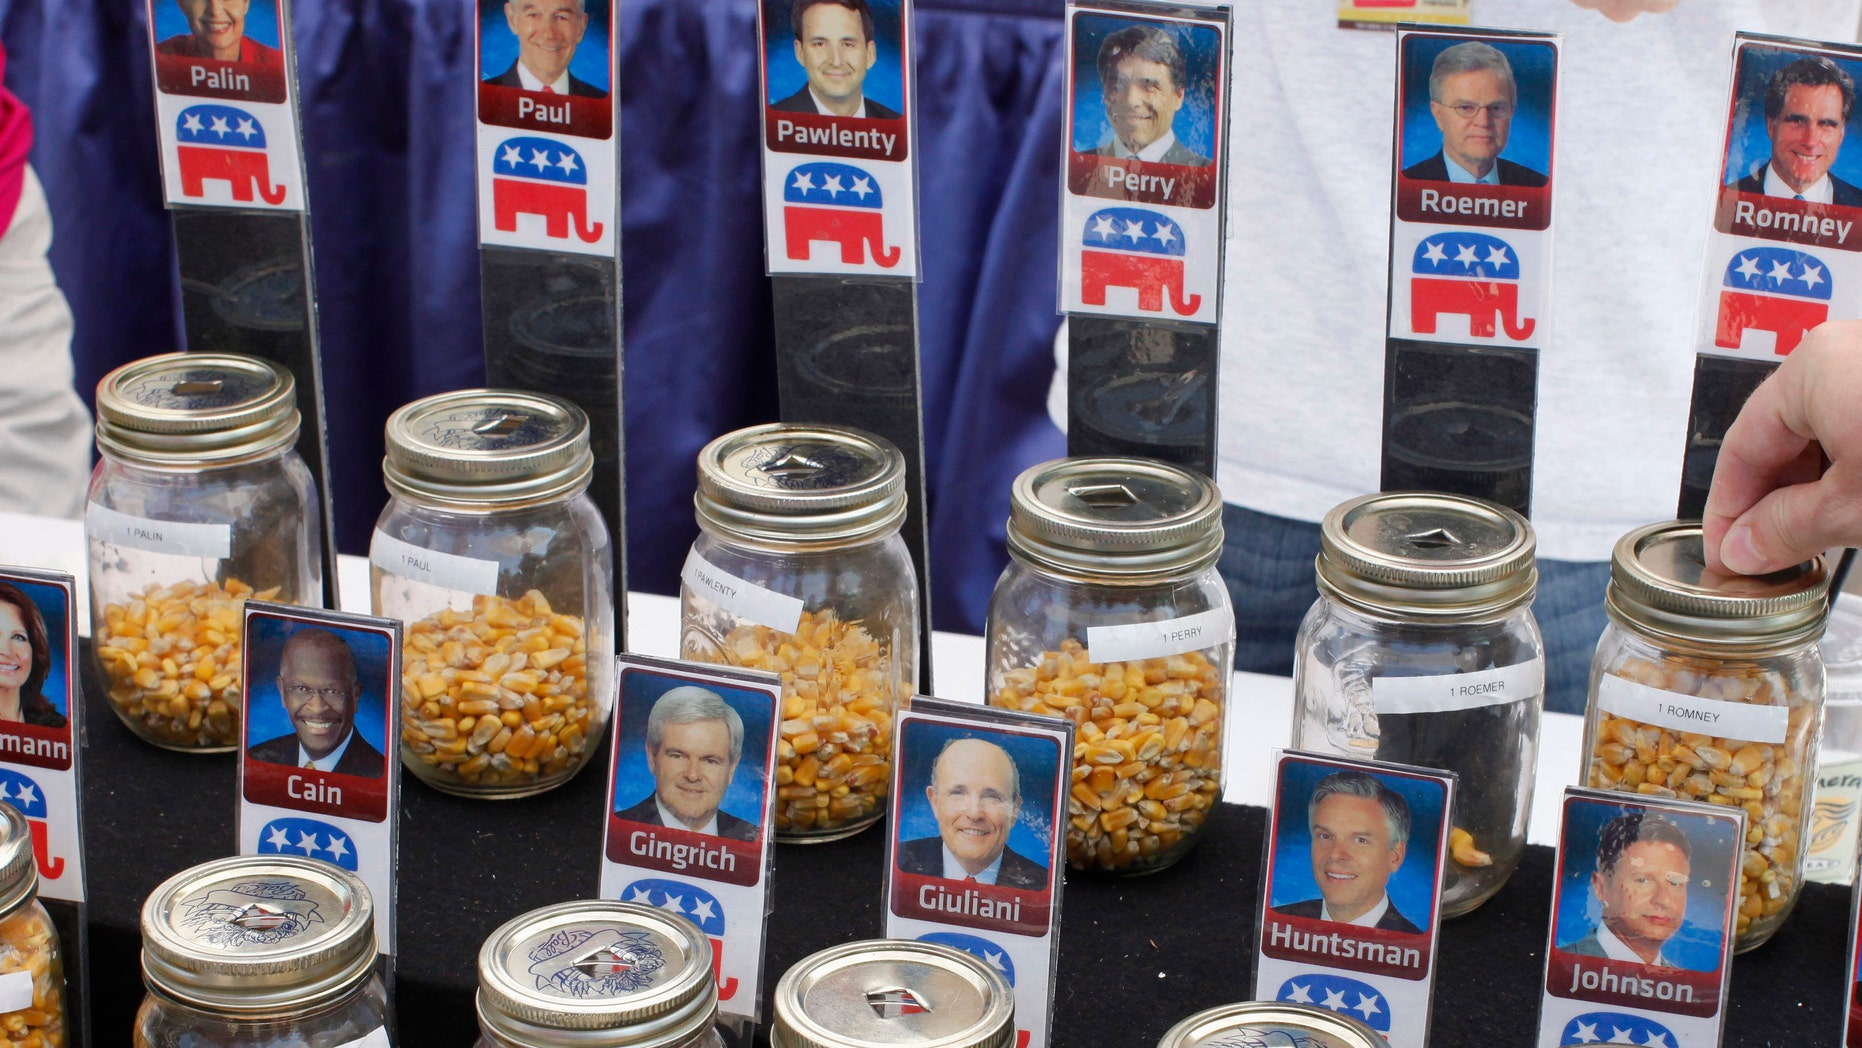 """FILE - In this Aug. 12, 2011 file photo, a visitor places a kernel of corn for Republican presidential hopeful former Massachusetts Gov. Mitt Romney during an informal """"corn poll"""" at the Iowa State Fair in Des Moines, Iowa.  (AP Photo/Charles Dharapak, File)"""